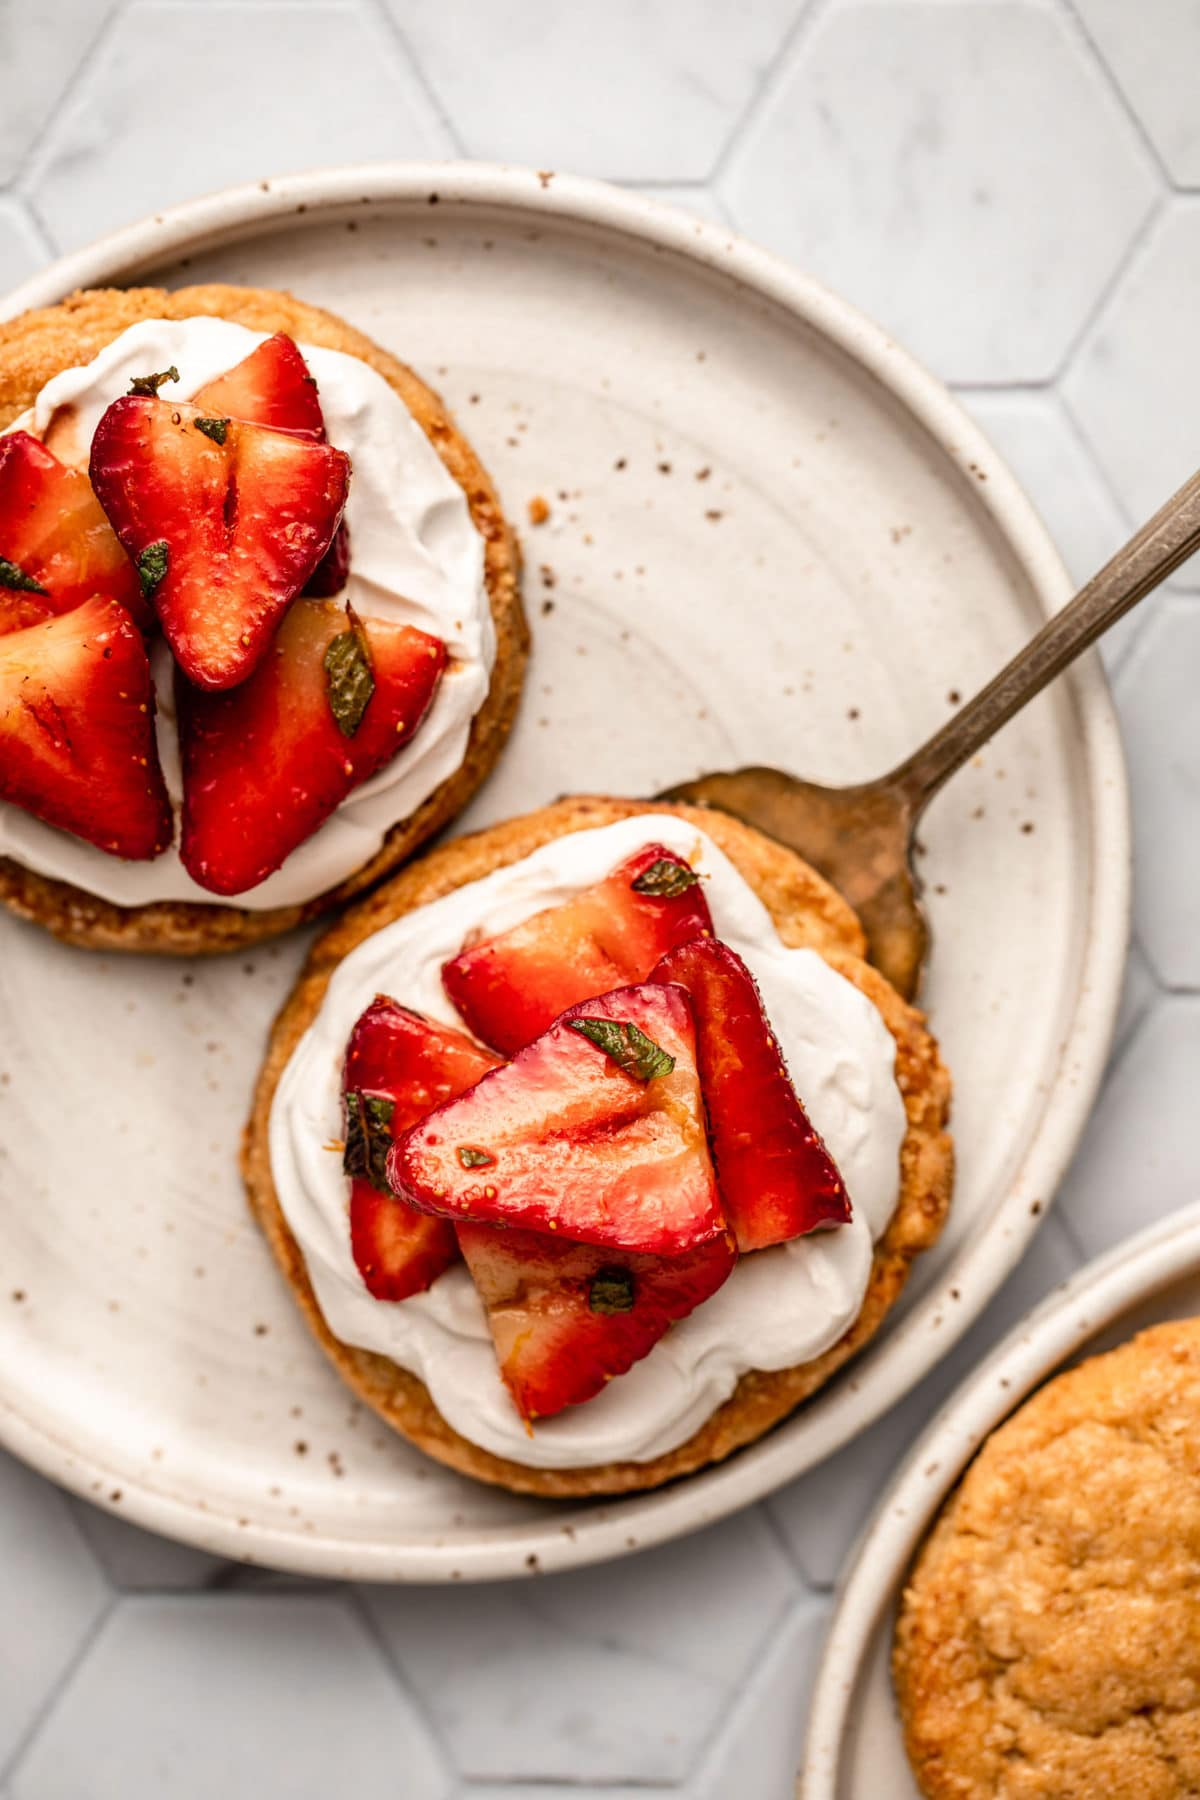 two strawberry shortcakes topped with coconut cream and strawberries on white speckled plate on tiled background